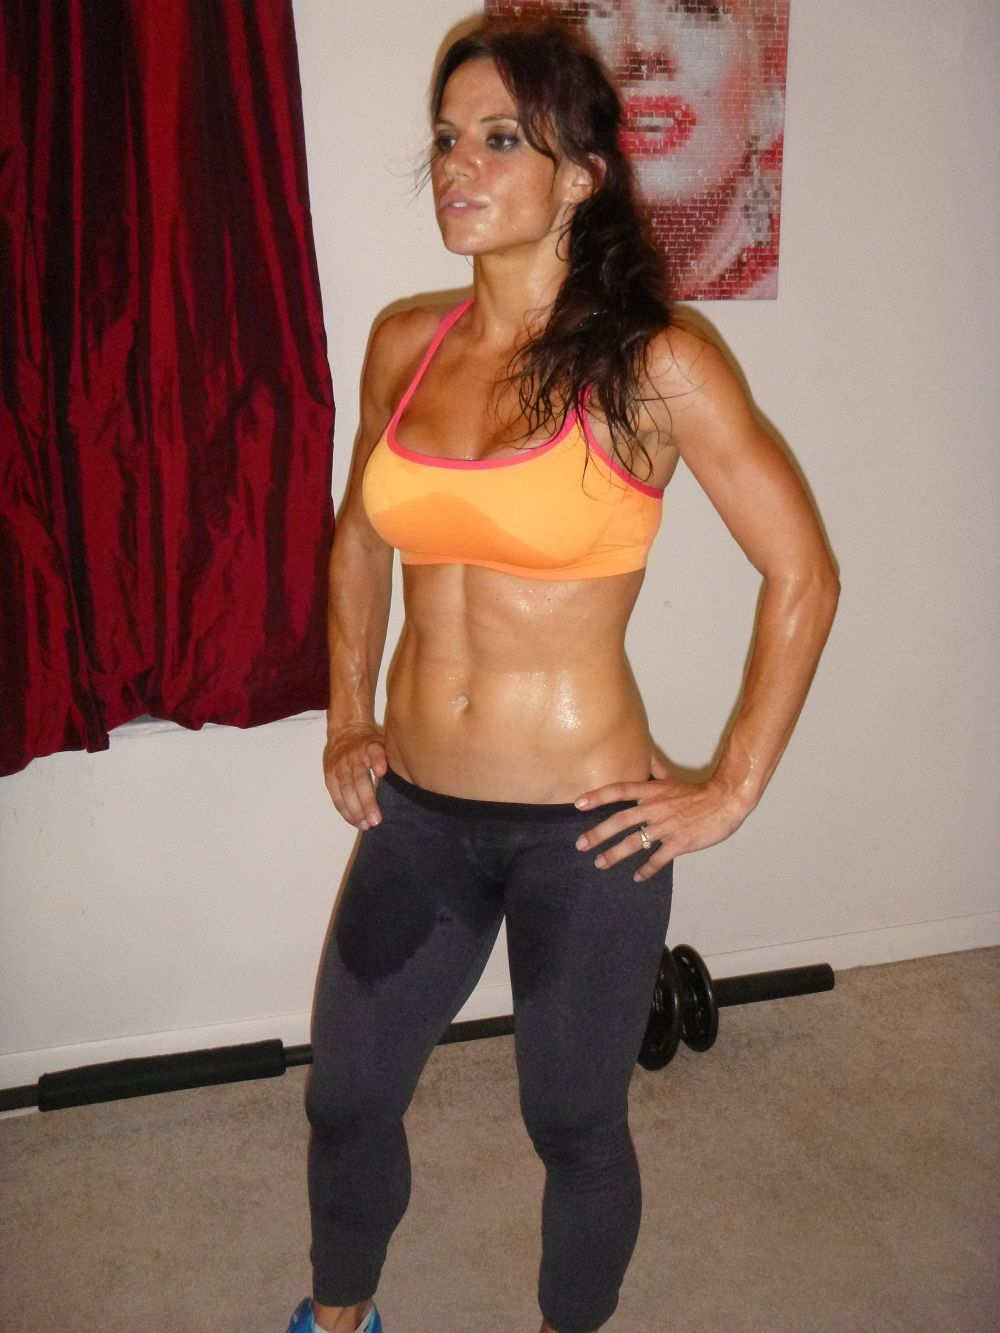 6 Workouts That Take 15 Minutes Or Less Body Building Pinterest Full On Melissa Bender Circuit And Fitness Sant Bien Tre